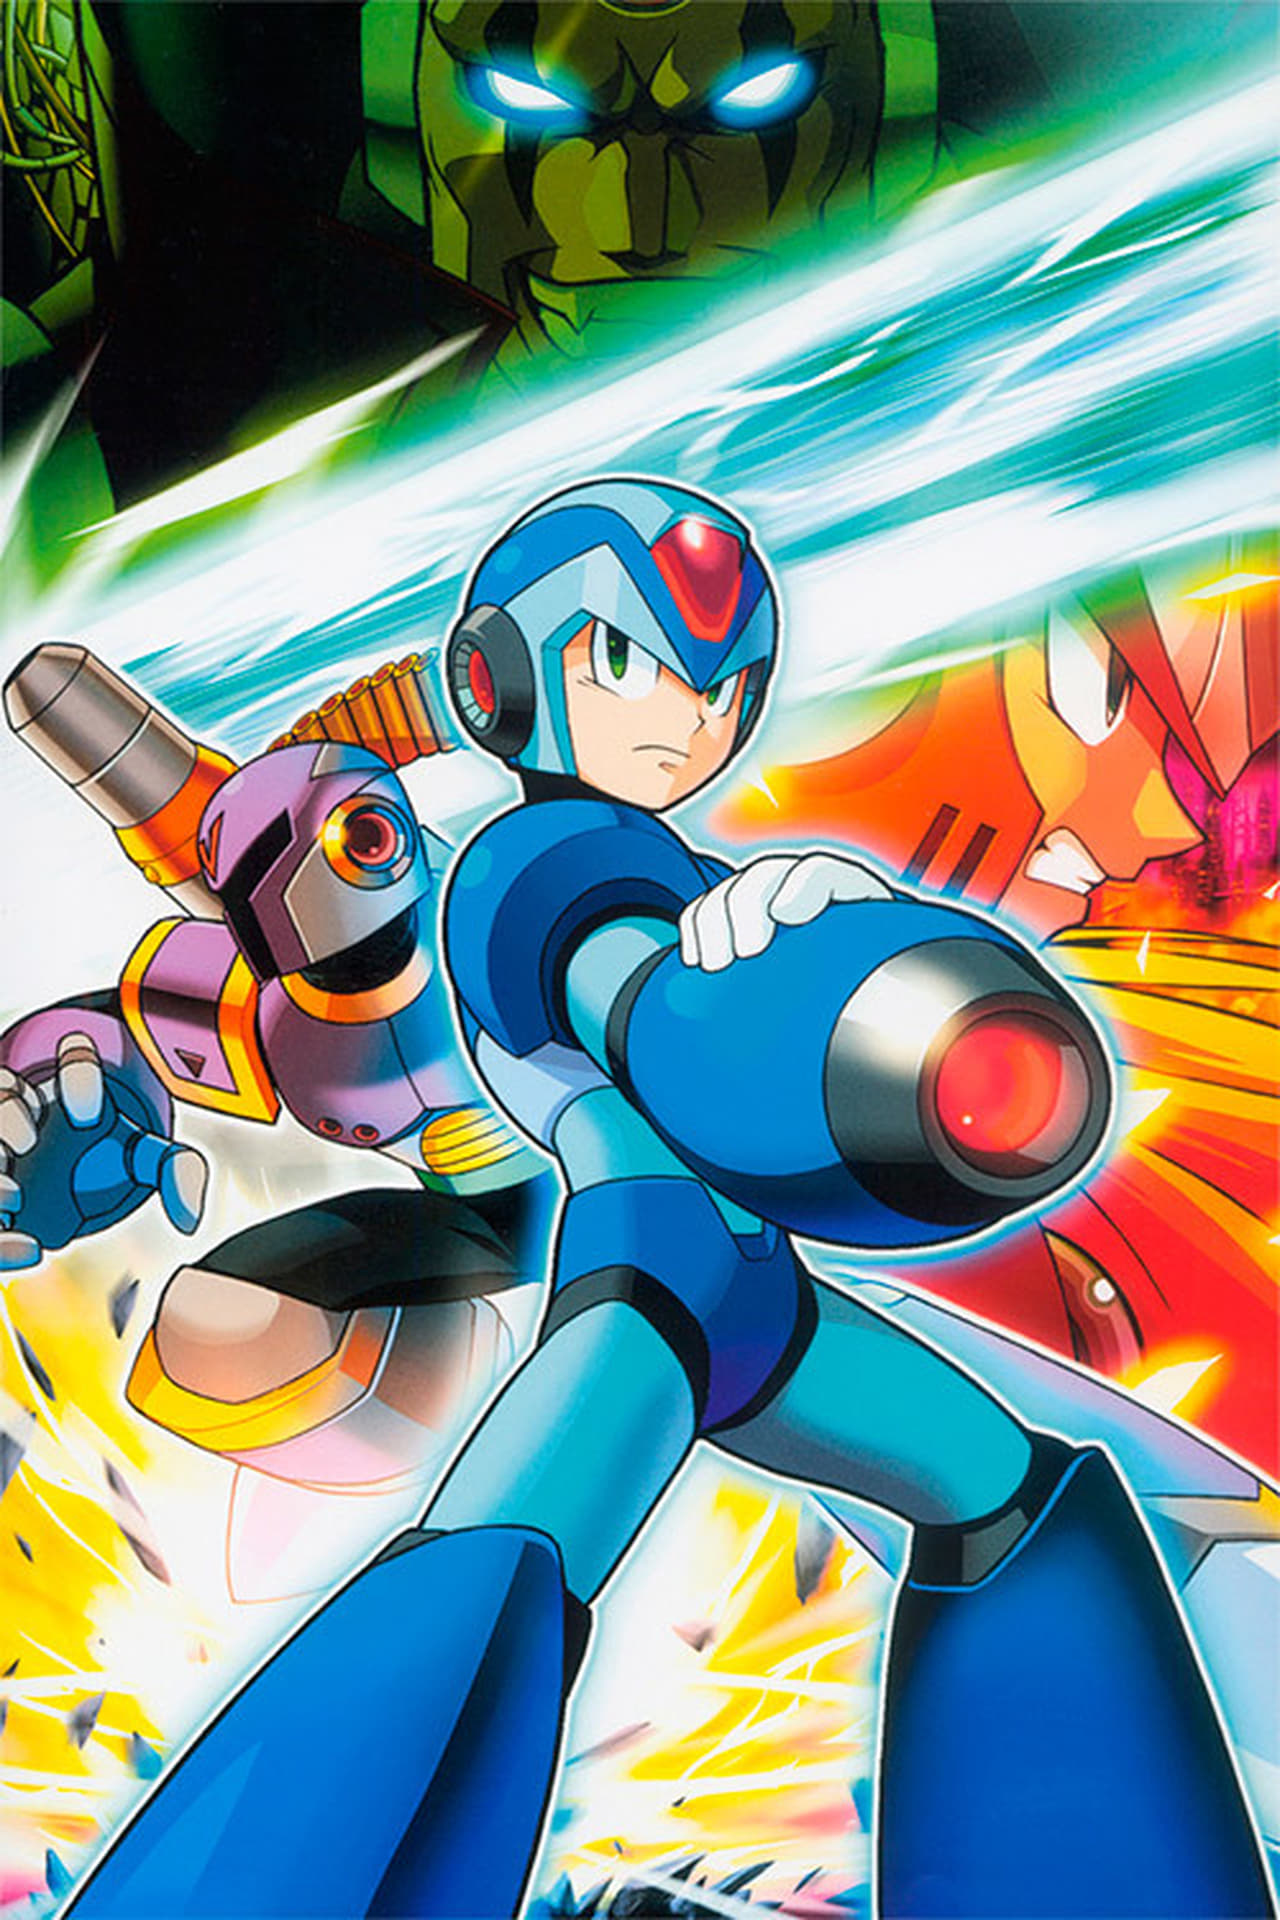 Megaman X - The Day of Sigma